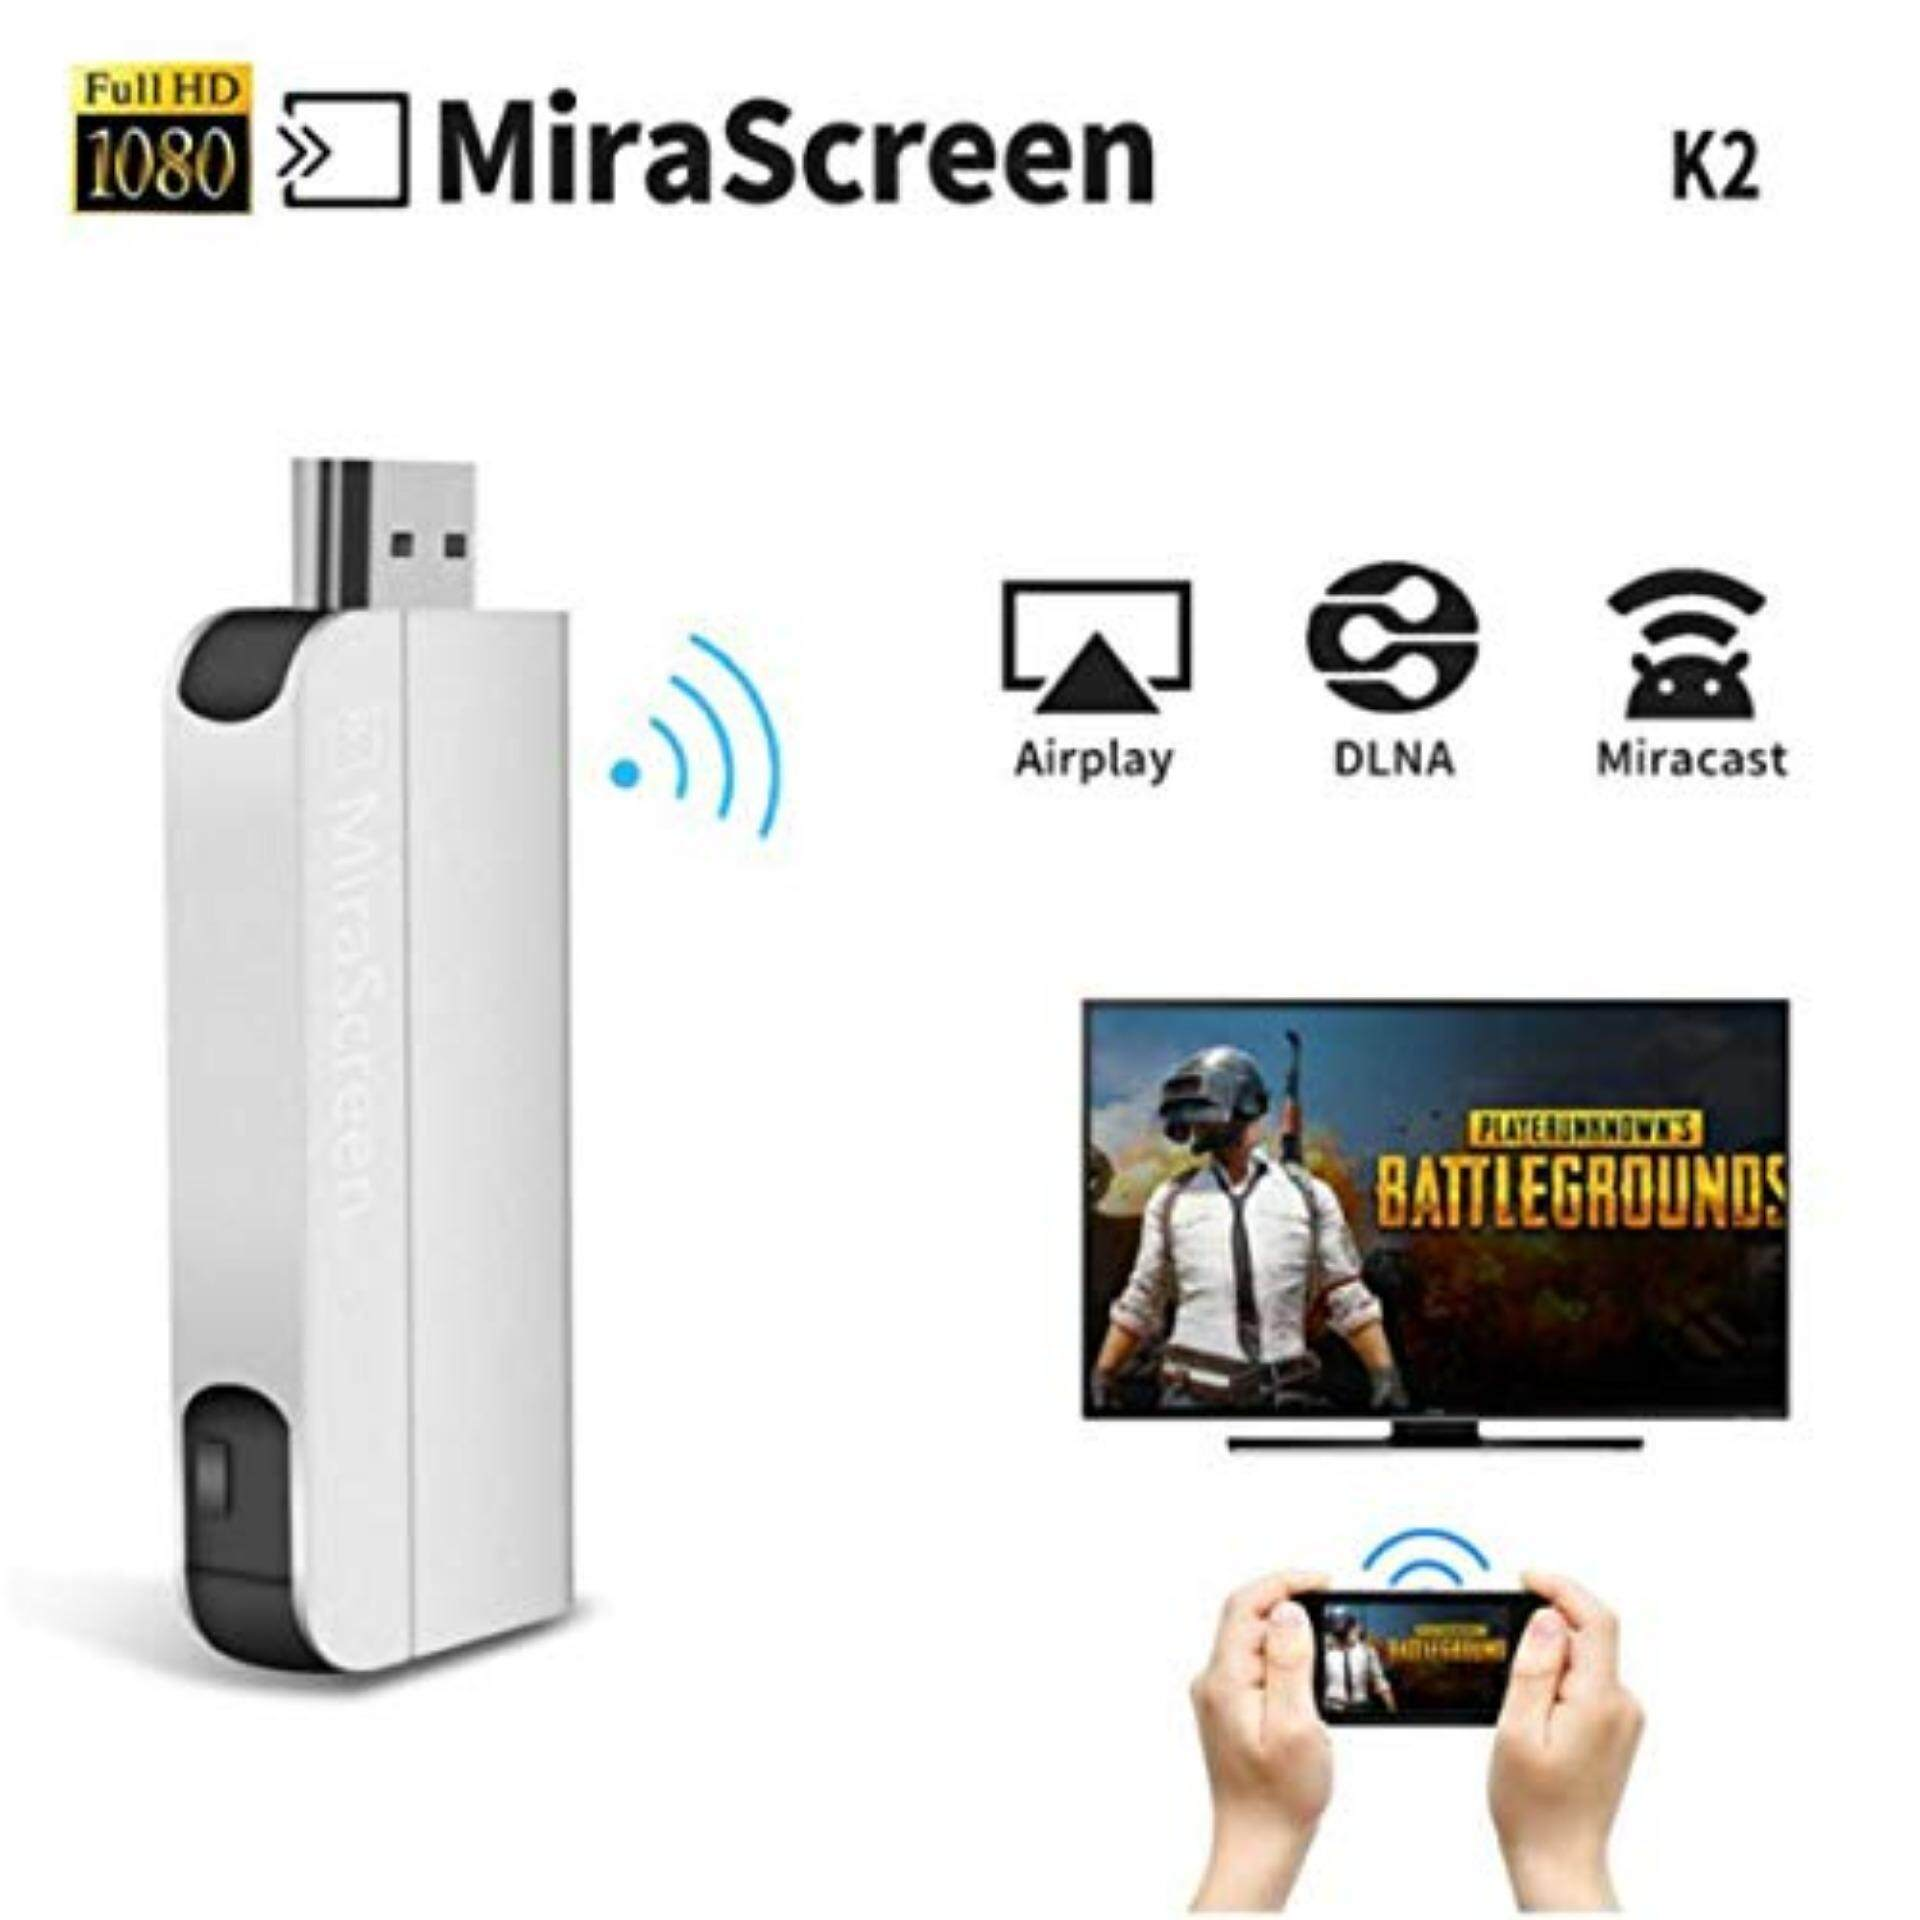 Hdmi Buy At Best Price In Malaysia Cable Tester Biasa Mirascreen K2 1080p Wifi Wireless Display Dongle For Smart Device